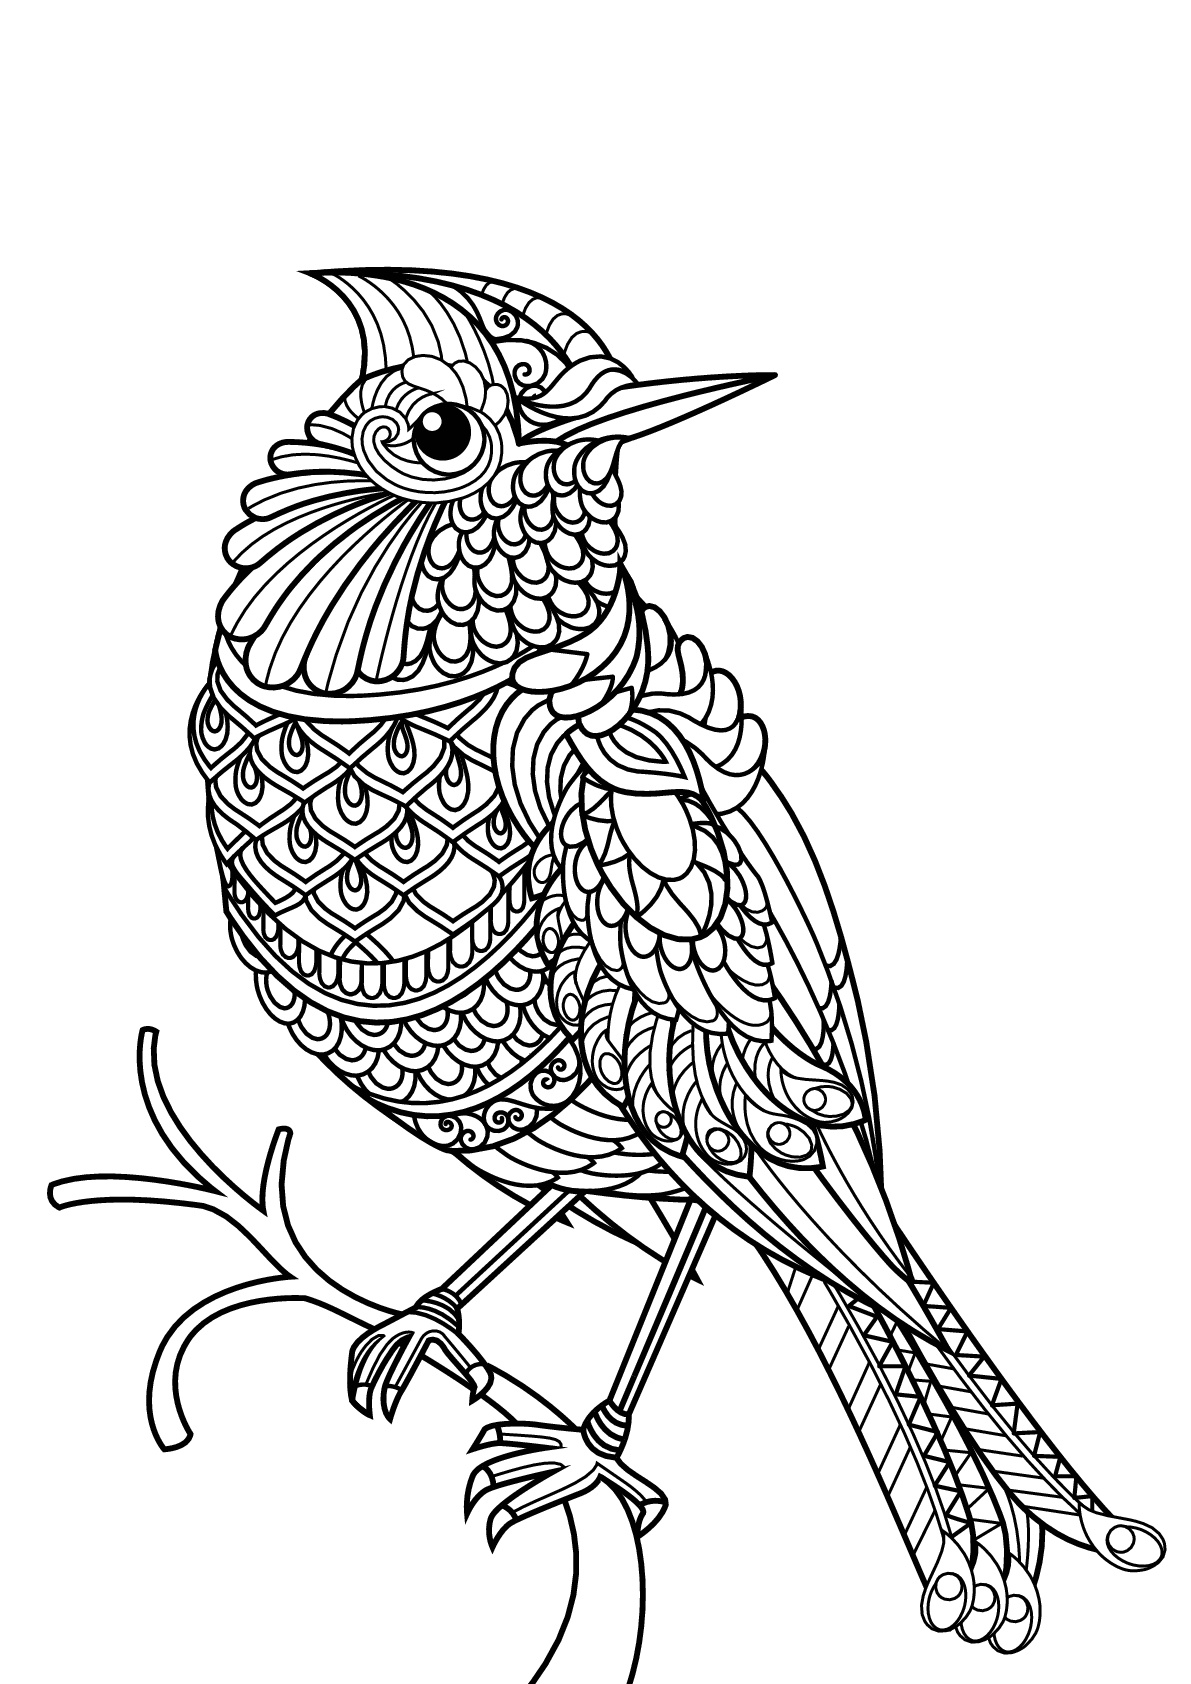 a coloring picture free book bird birds adult coloring pages coloring picture a